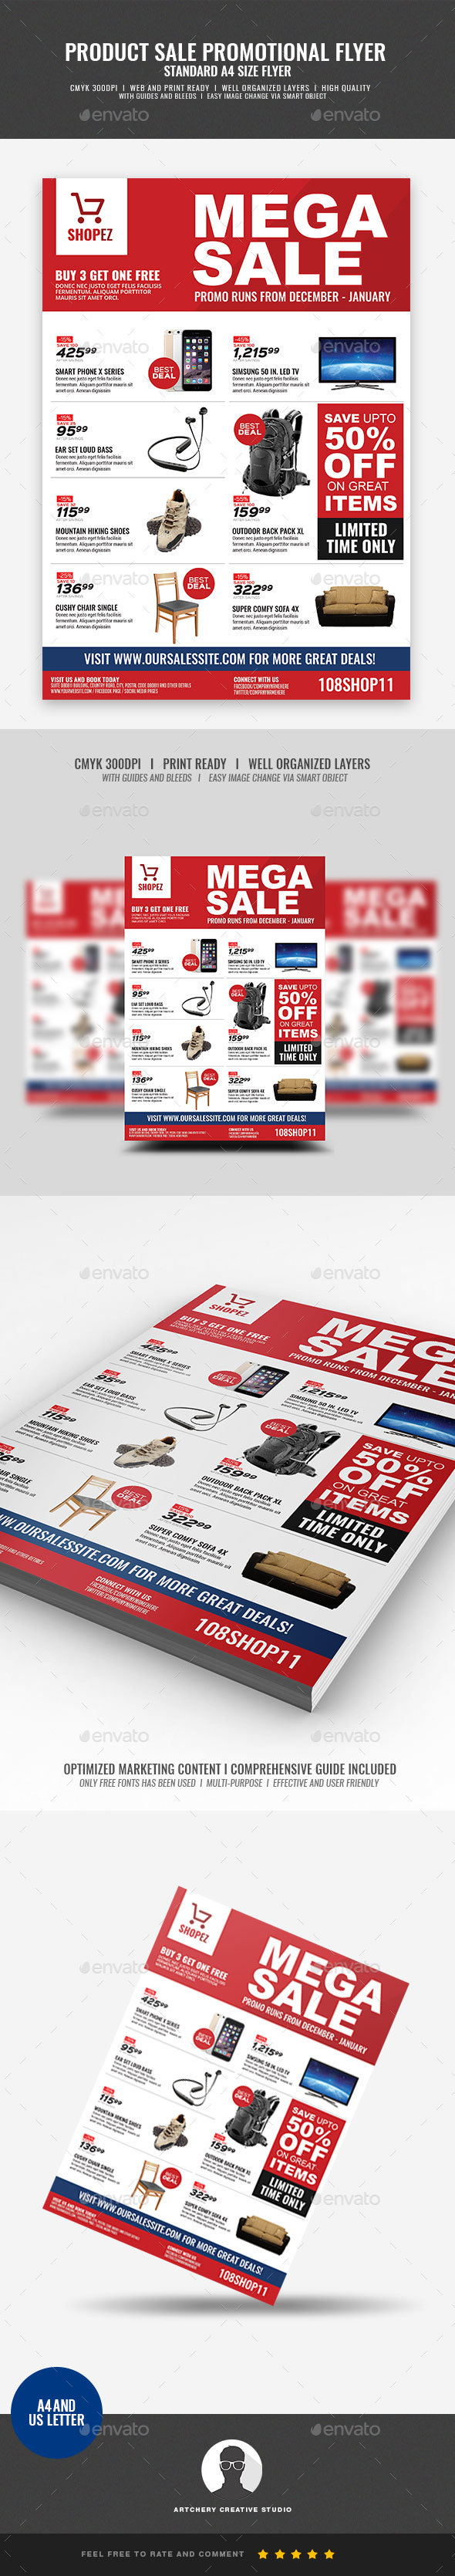 Sales and Promotional Flyer - Commerce Flyers